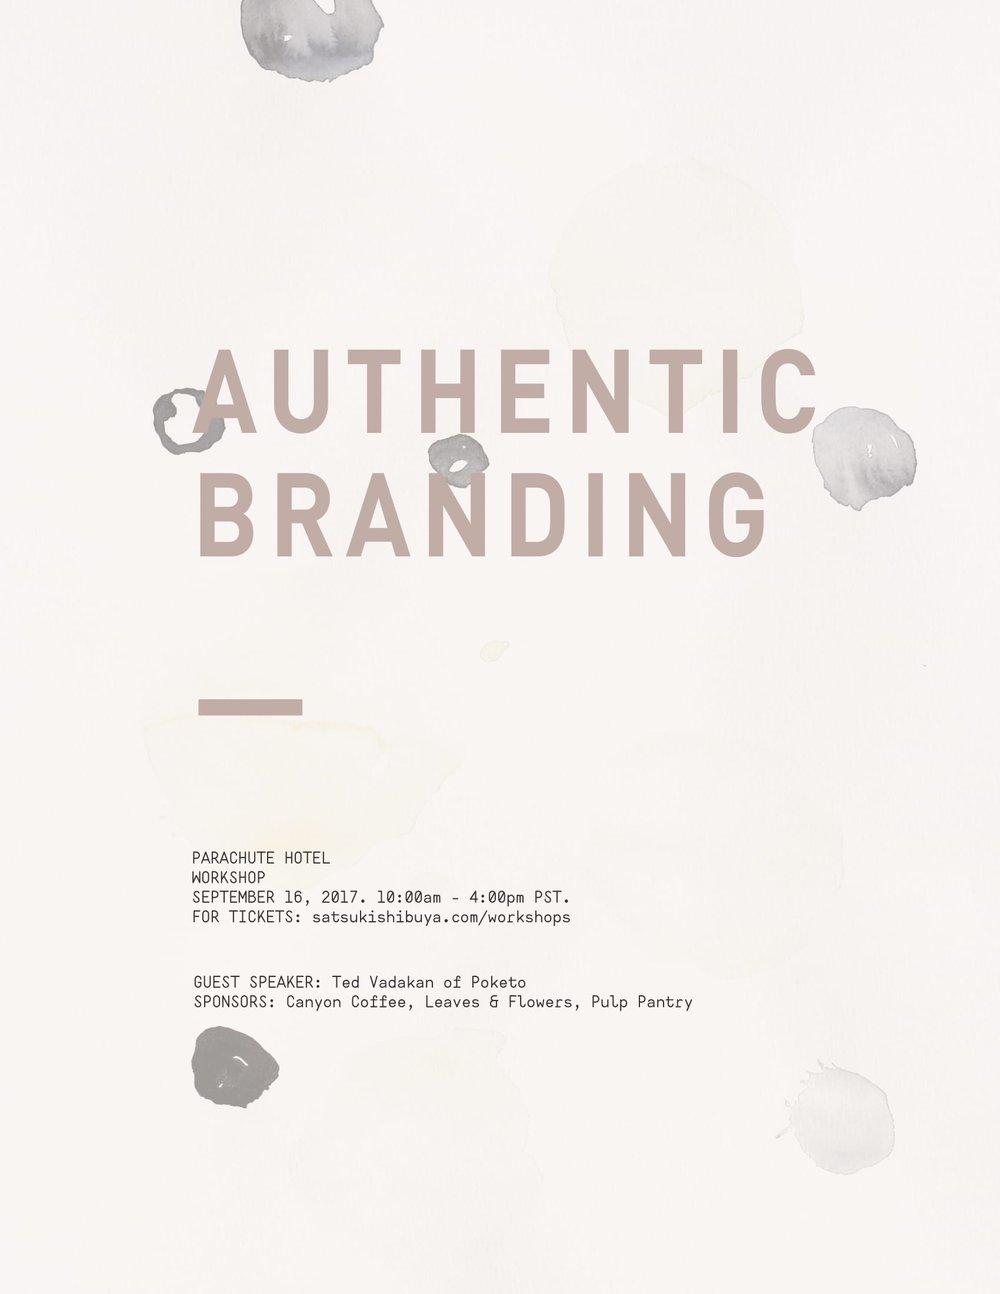 Authentic Branding Workshop with Satsuki Shibuya